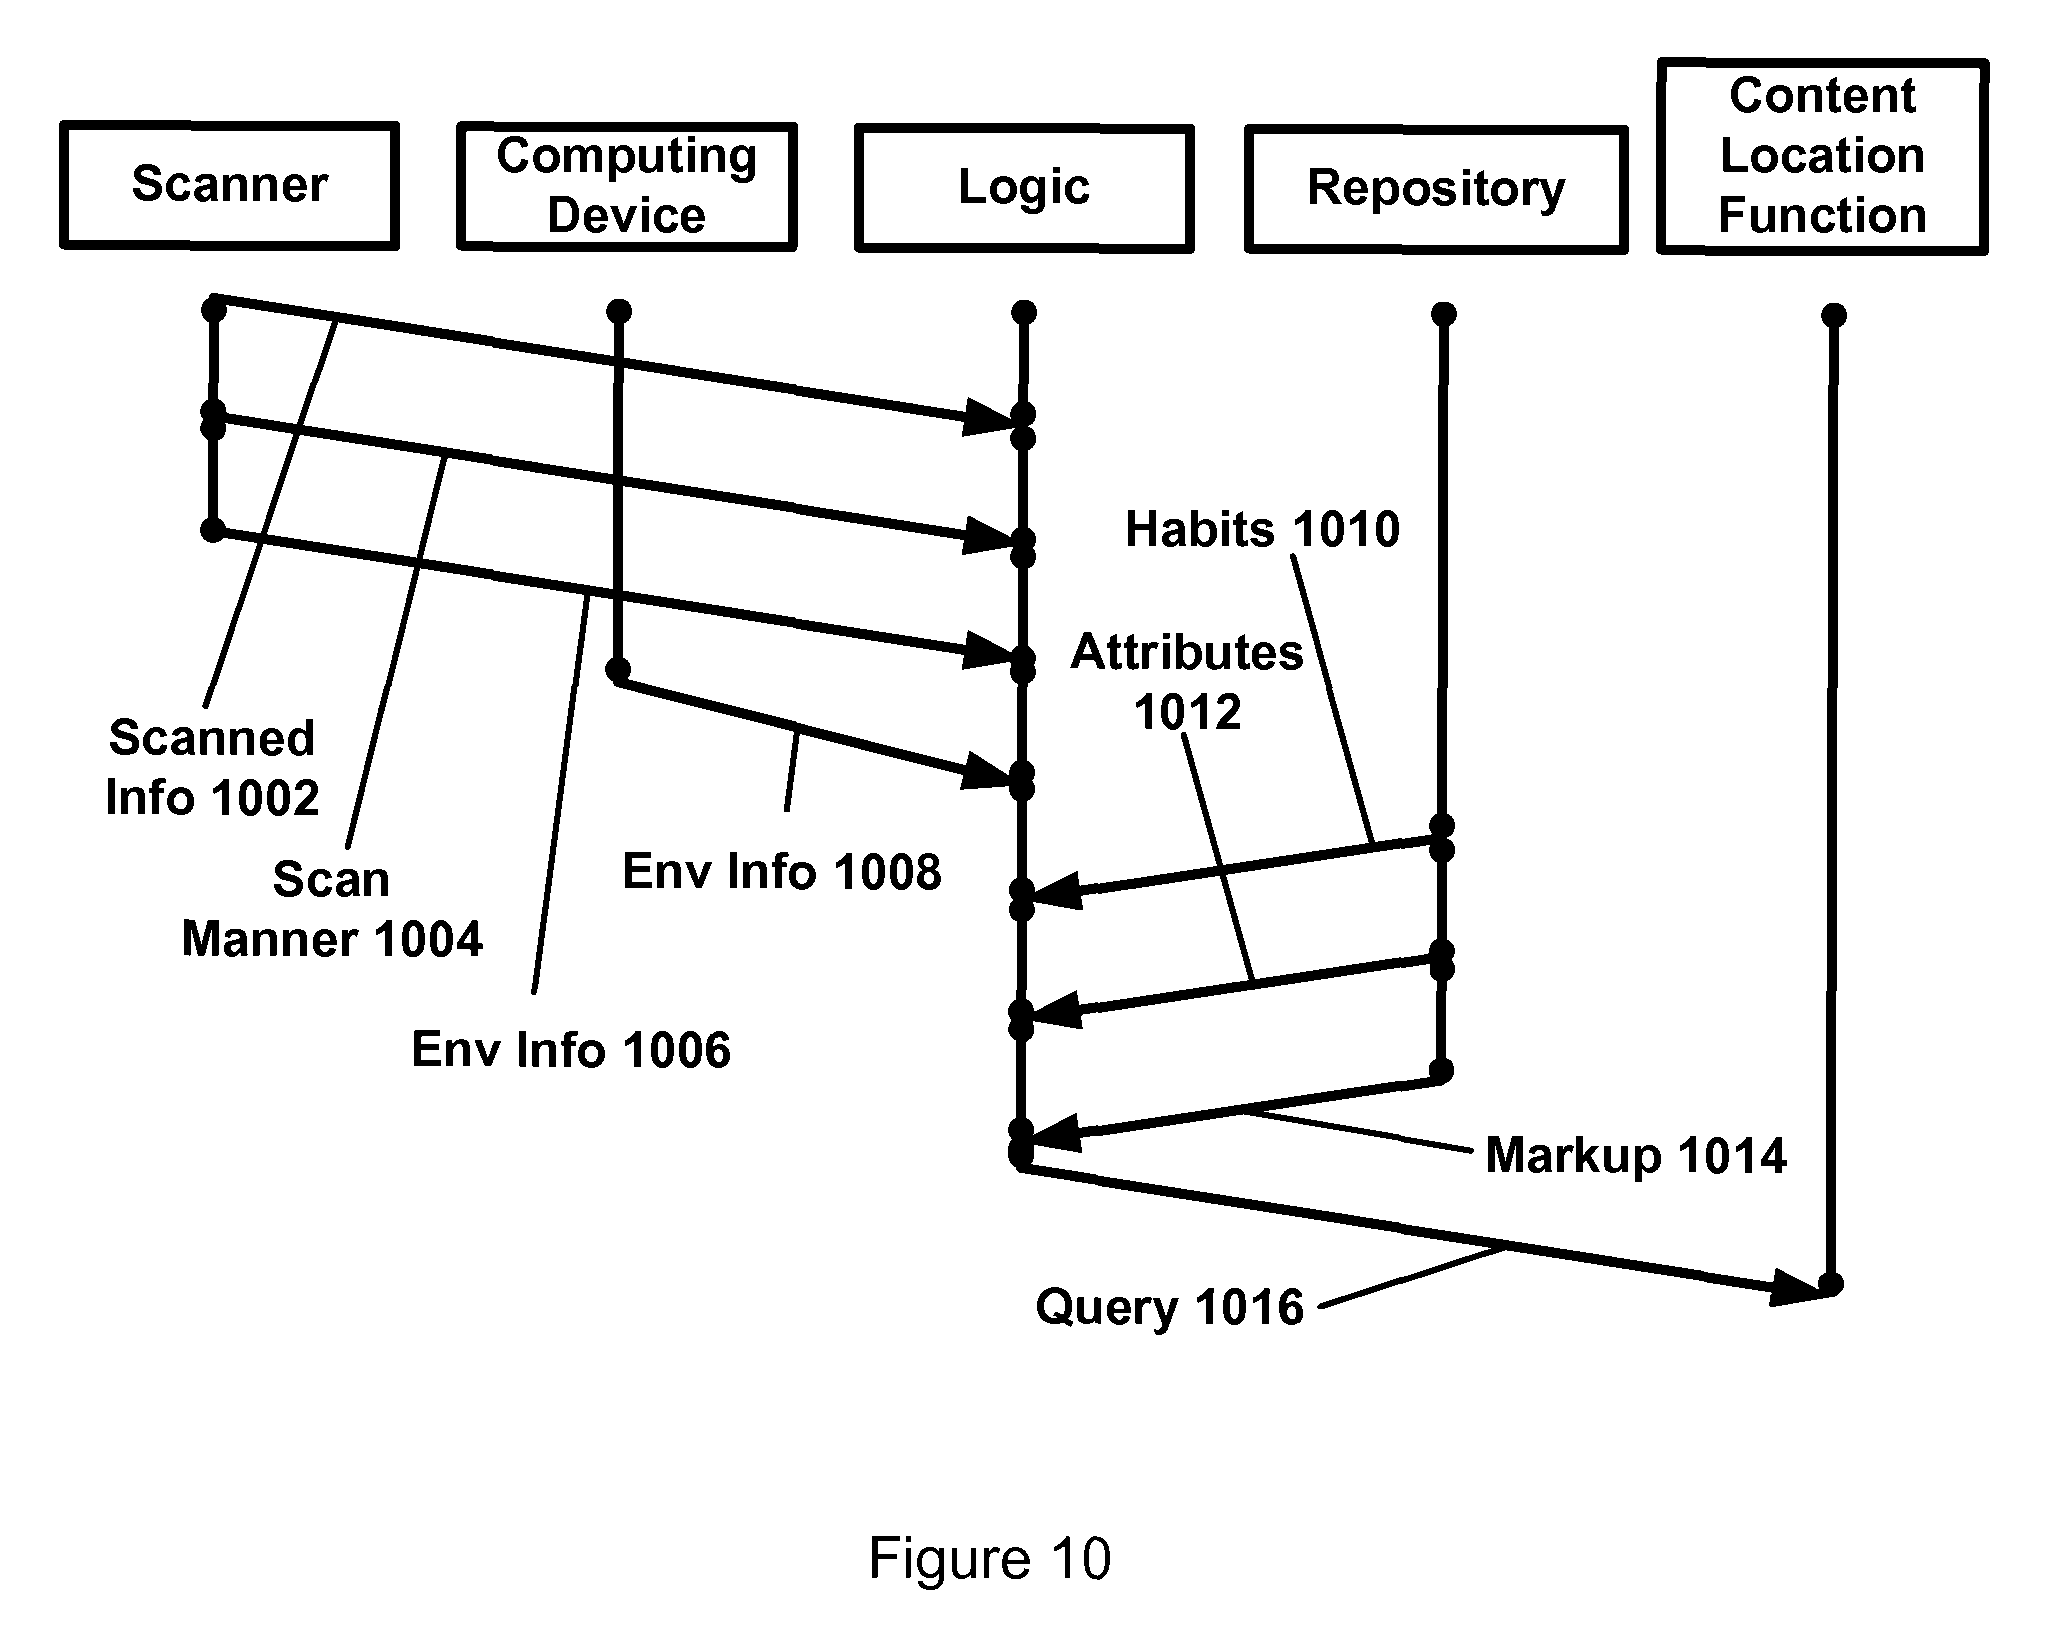 US8005720B2 - Applying scanned information to identify